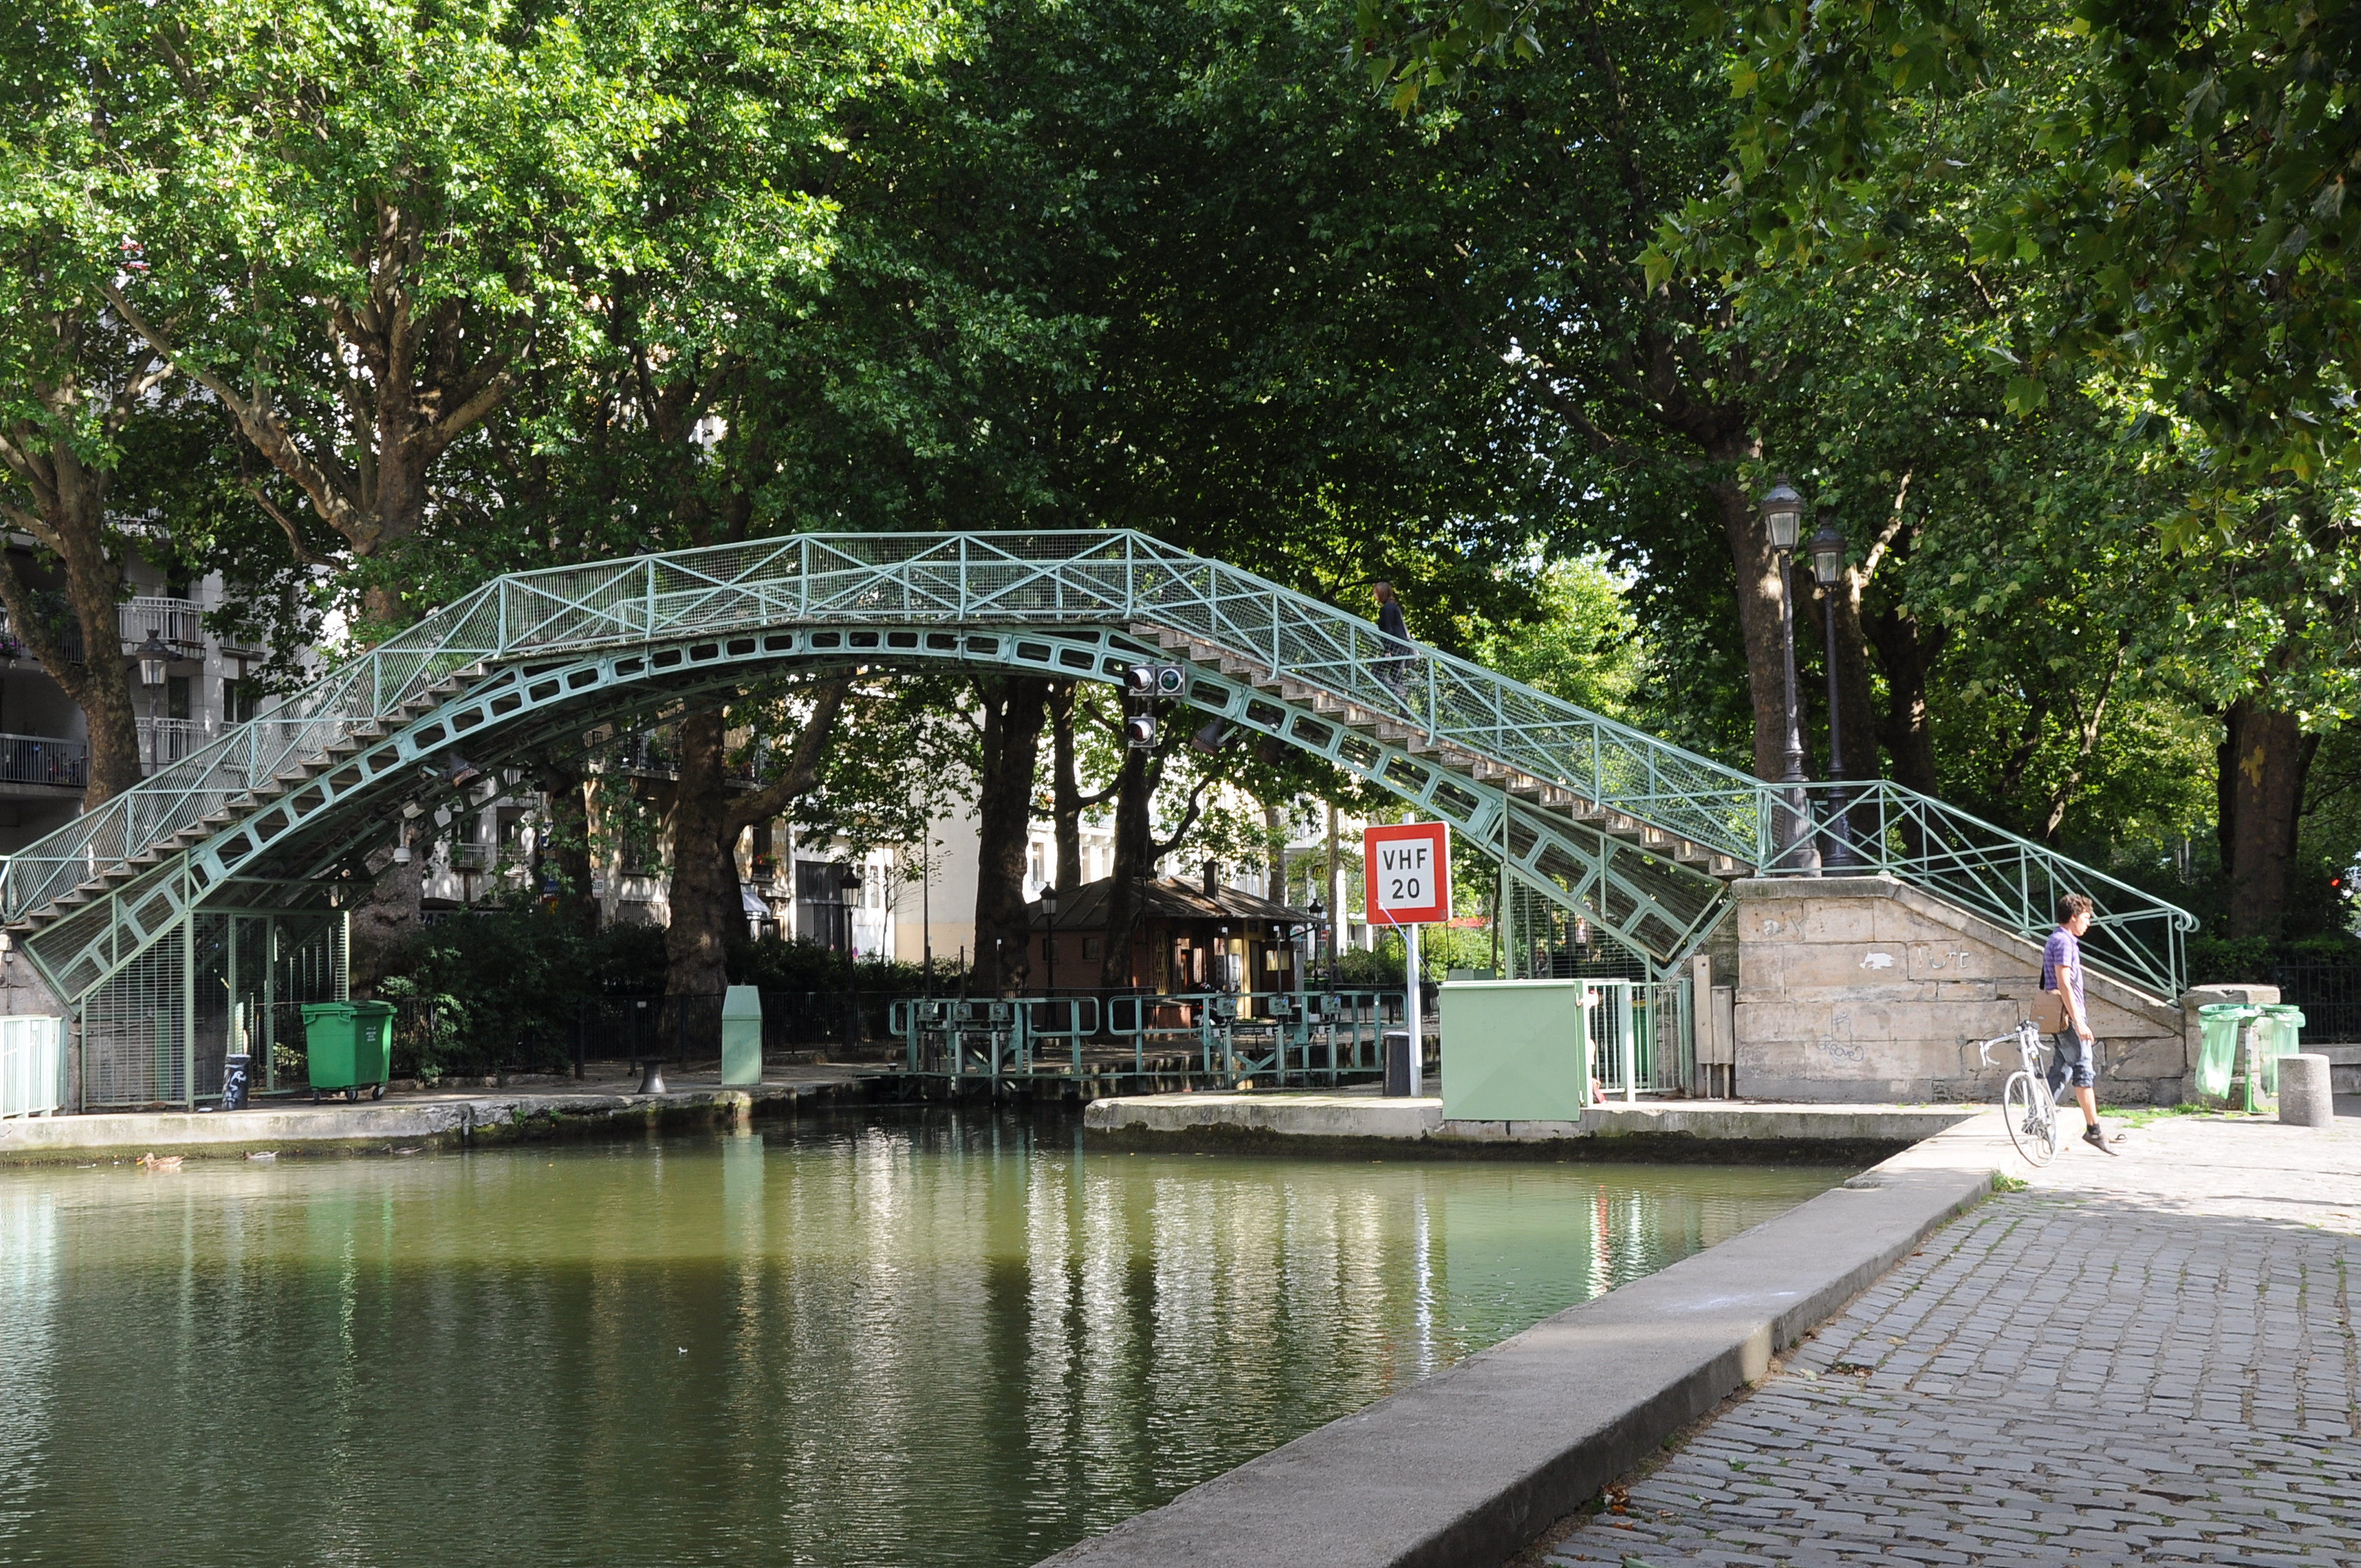 file canal saint martin passerelle des douanes 003 jpg wikimedia commons. Black Bedroom Furniture Sets. Home Design Ideas